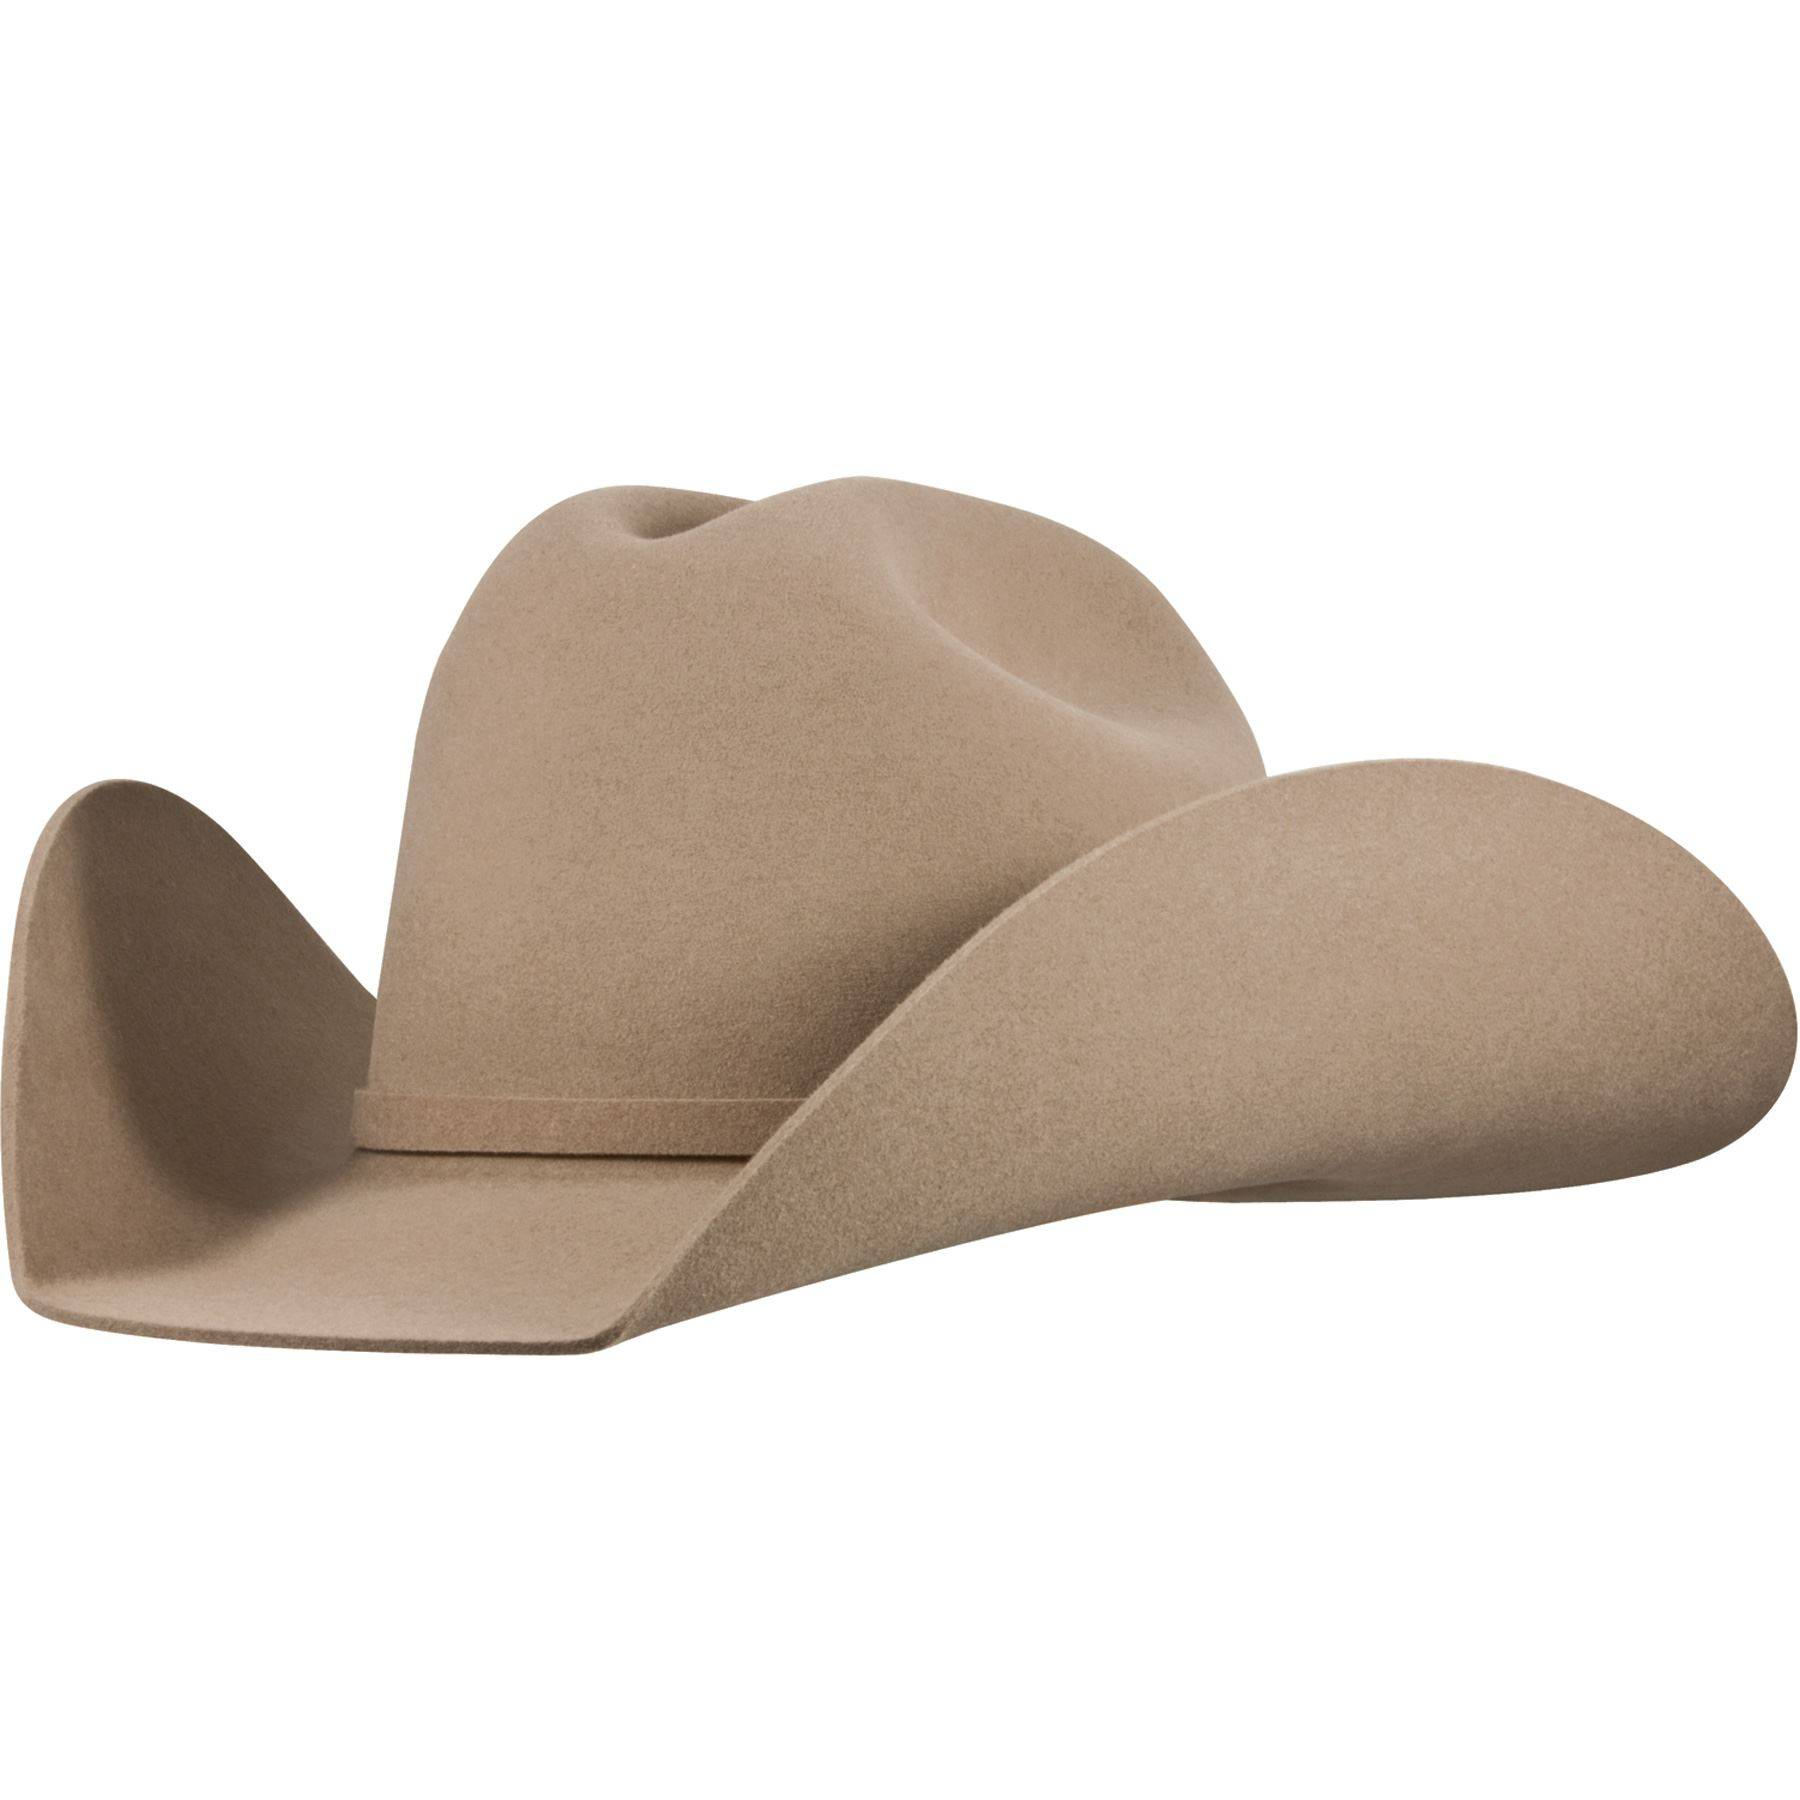 Schneiders Low Rider 3X Felt Cowboy Hat - Pecan in Apparel Boots at ... 8afc79acf0a